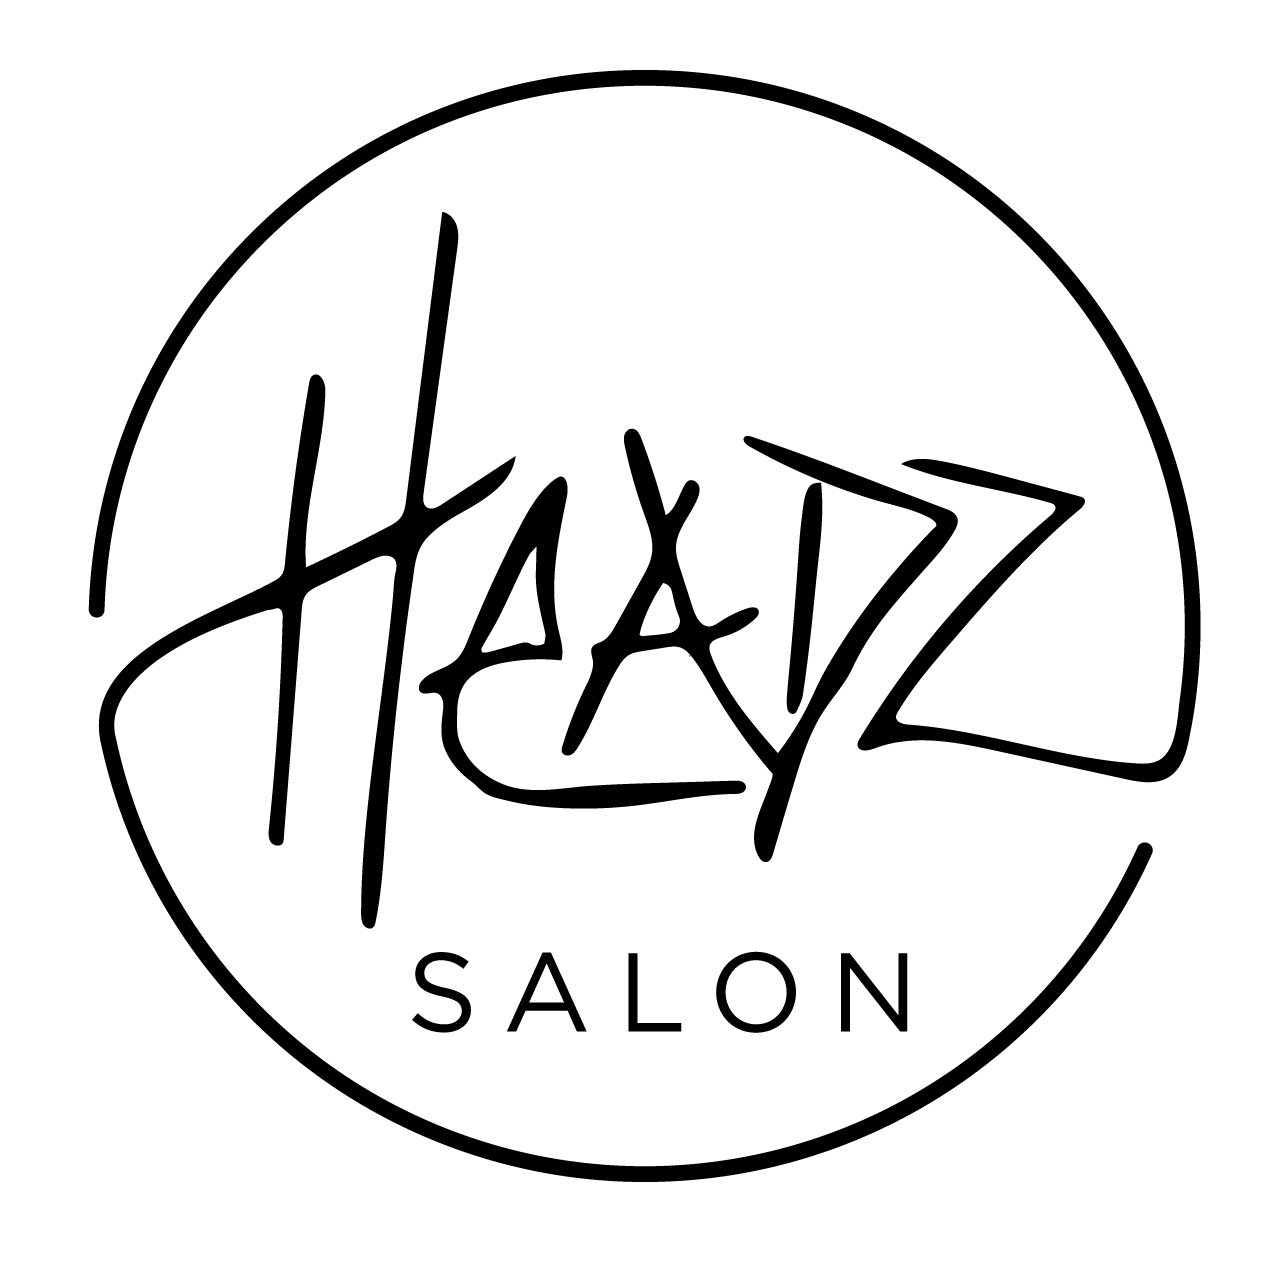 For sure one of the best places I've ever gotten my hair done! Went in for the first time and everyone was kind, courteous, and obviously loved being there! Headz will be my go to salon from now on!